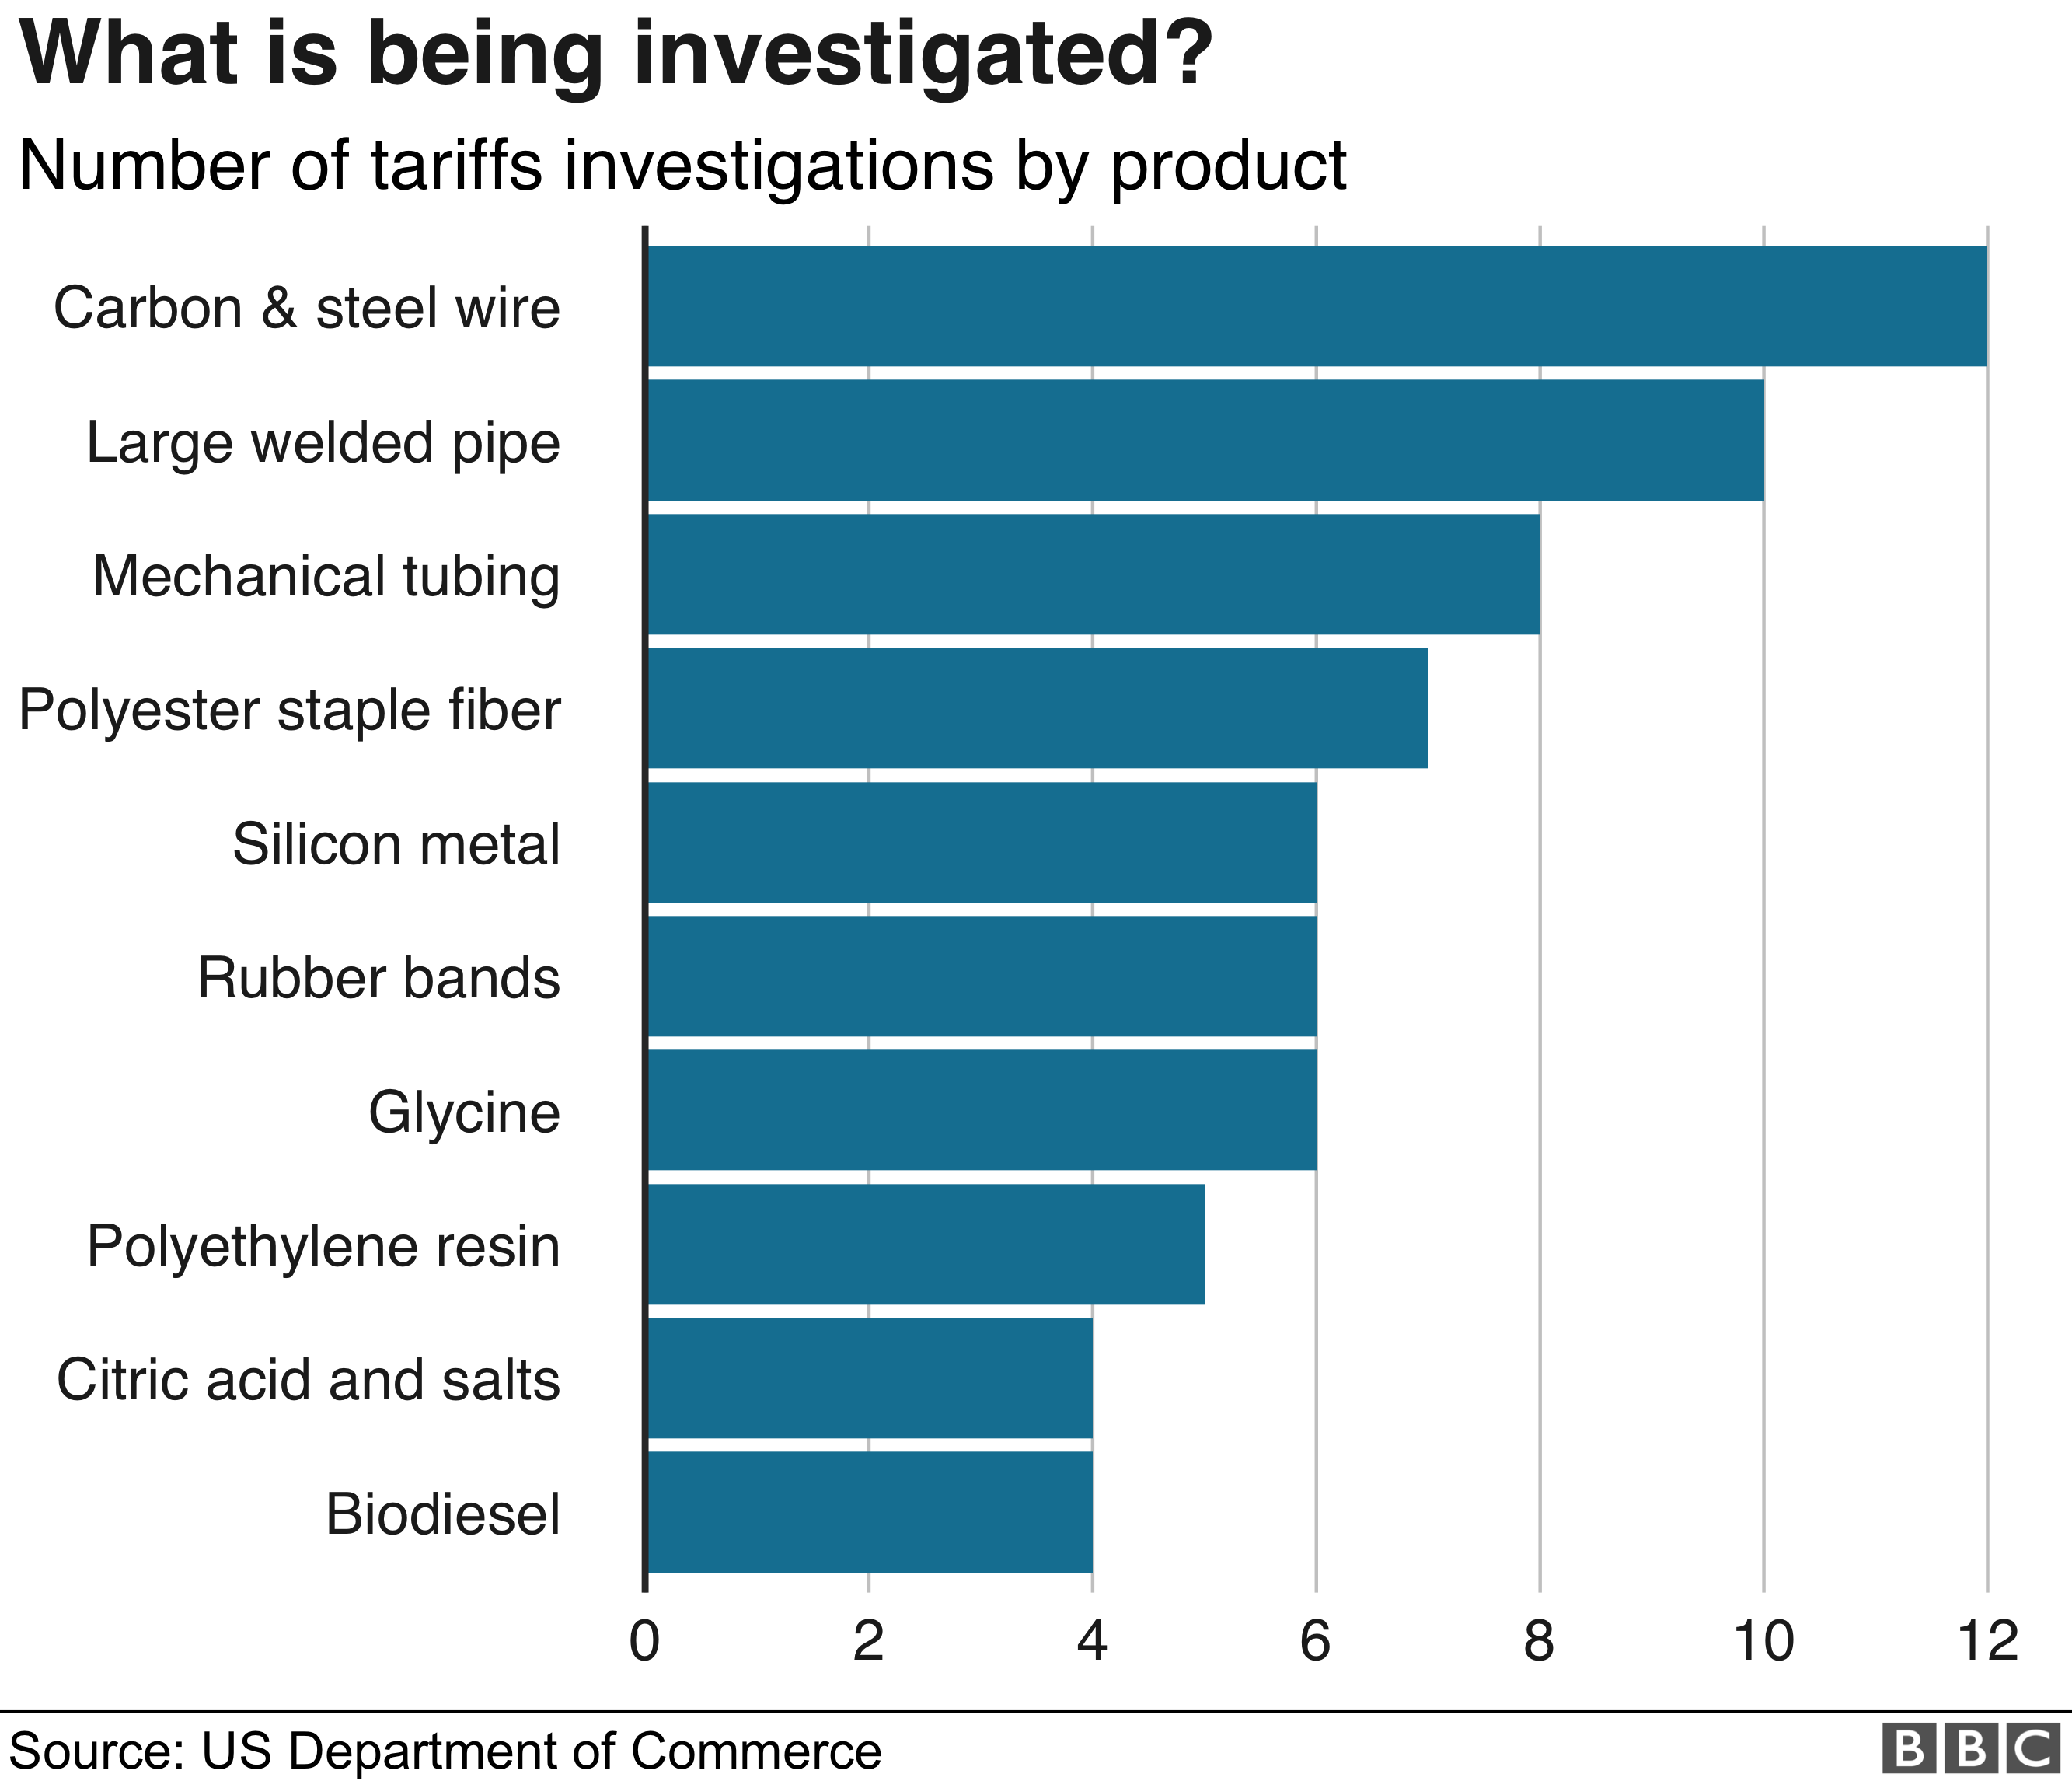 Investigations by product